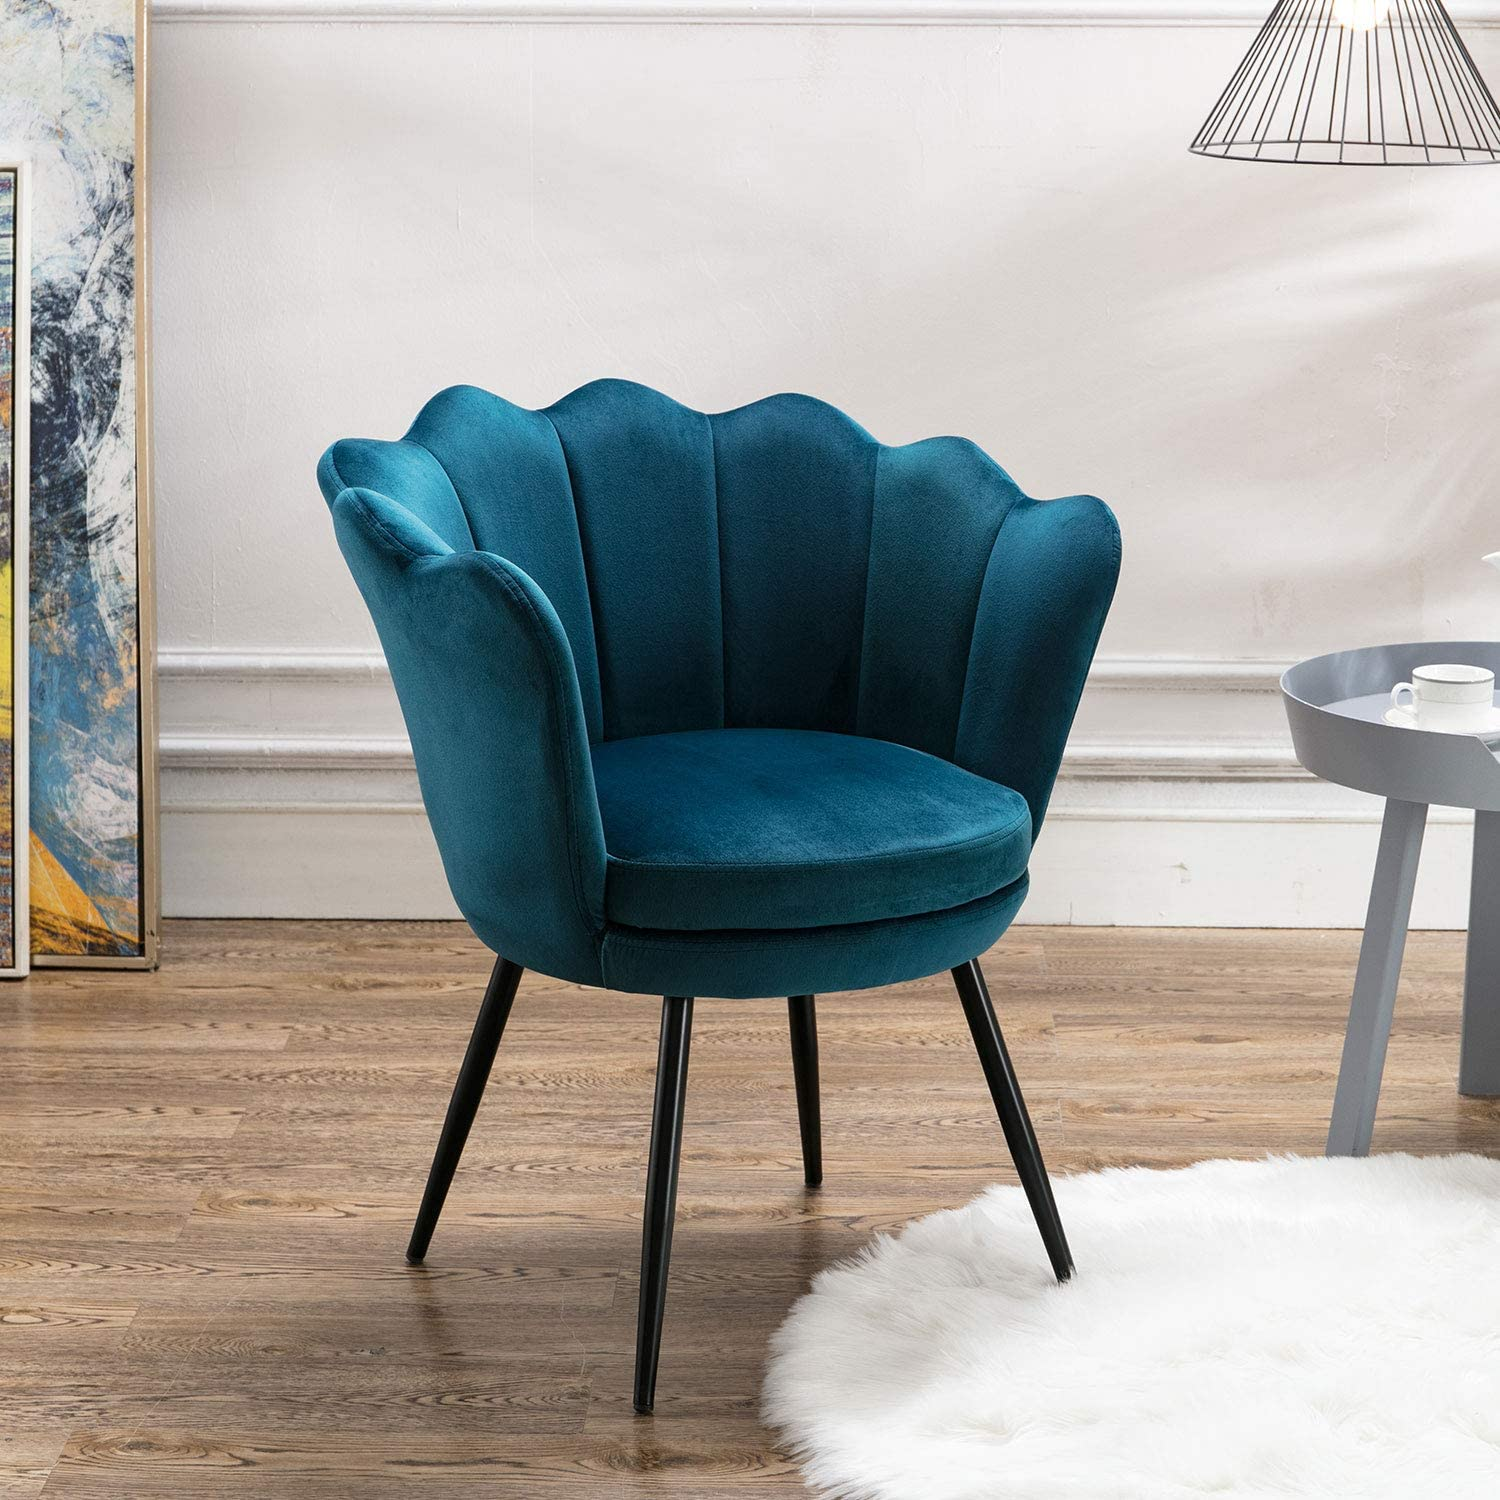 Velvet Accent Chair for Living Room/Bed Room, Upholstered Mid Century Modern Leisure Arm Chair with Black Metal Legs, Guest Chair, Vanity Chair(Teal Blue)